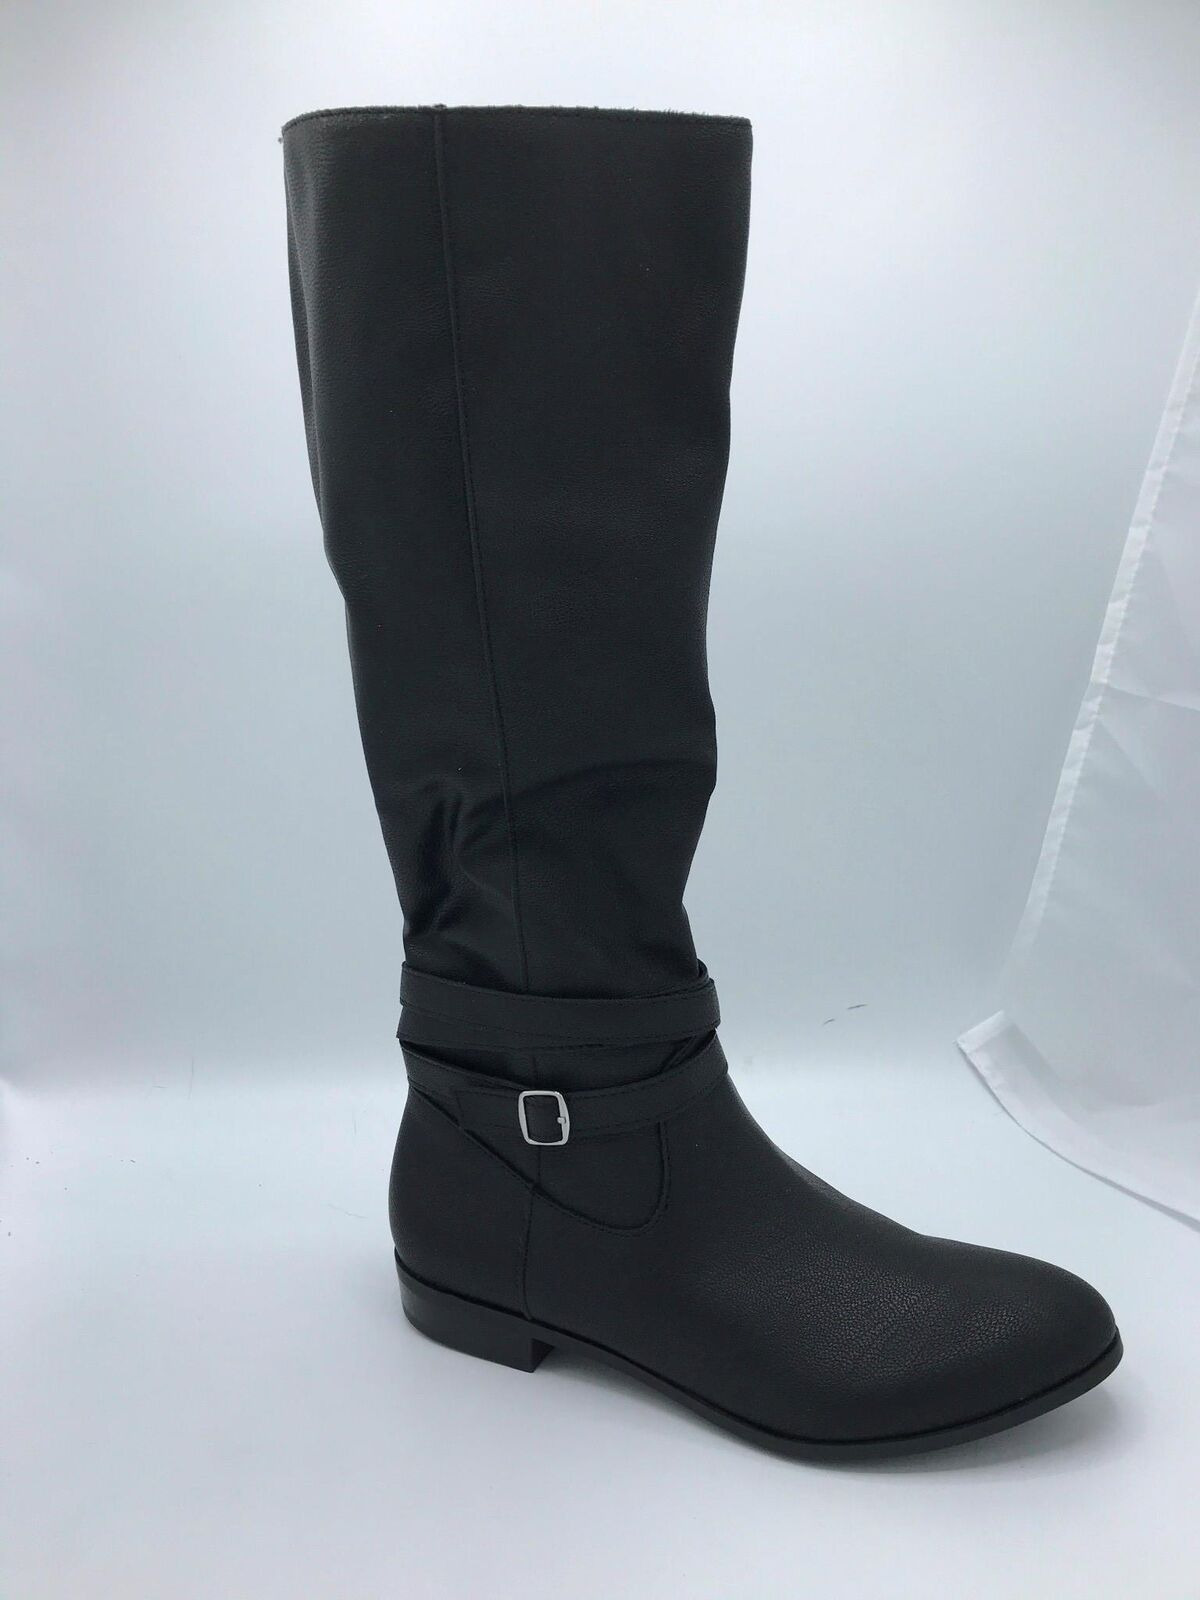 Style & Co Women's Fridaa Round Toe Knee-High Boot (1822) Black Wide Calf Size 5